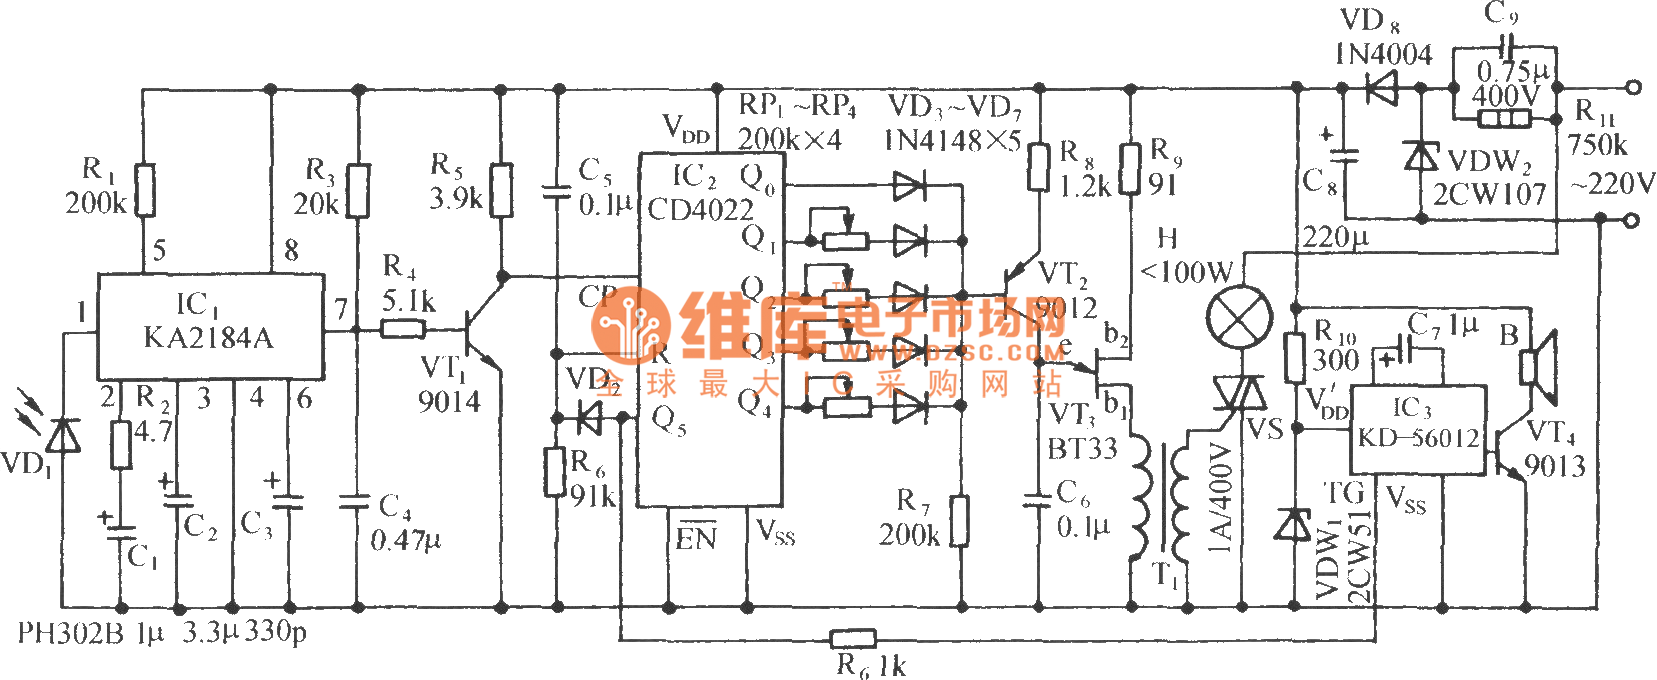 ir light dimmer circuit diagram for household schematic diagramir light dimmer circuit diagram for household box wiring diagramir remote control dimmer light switch circuit